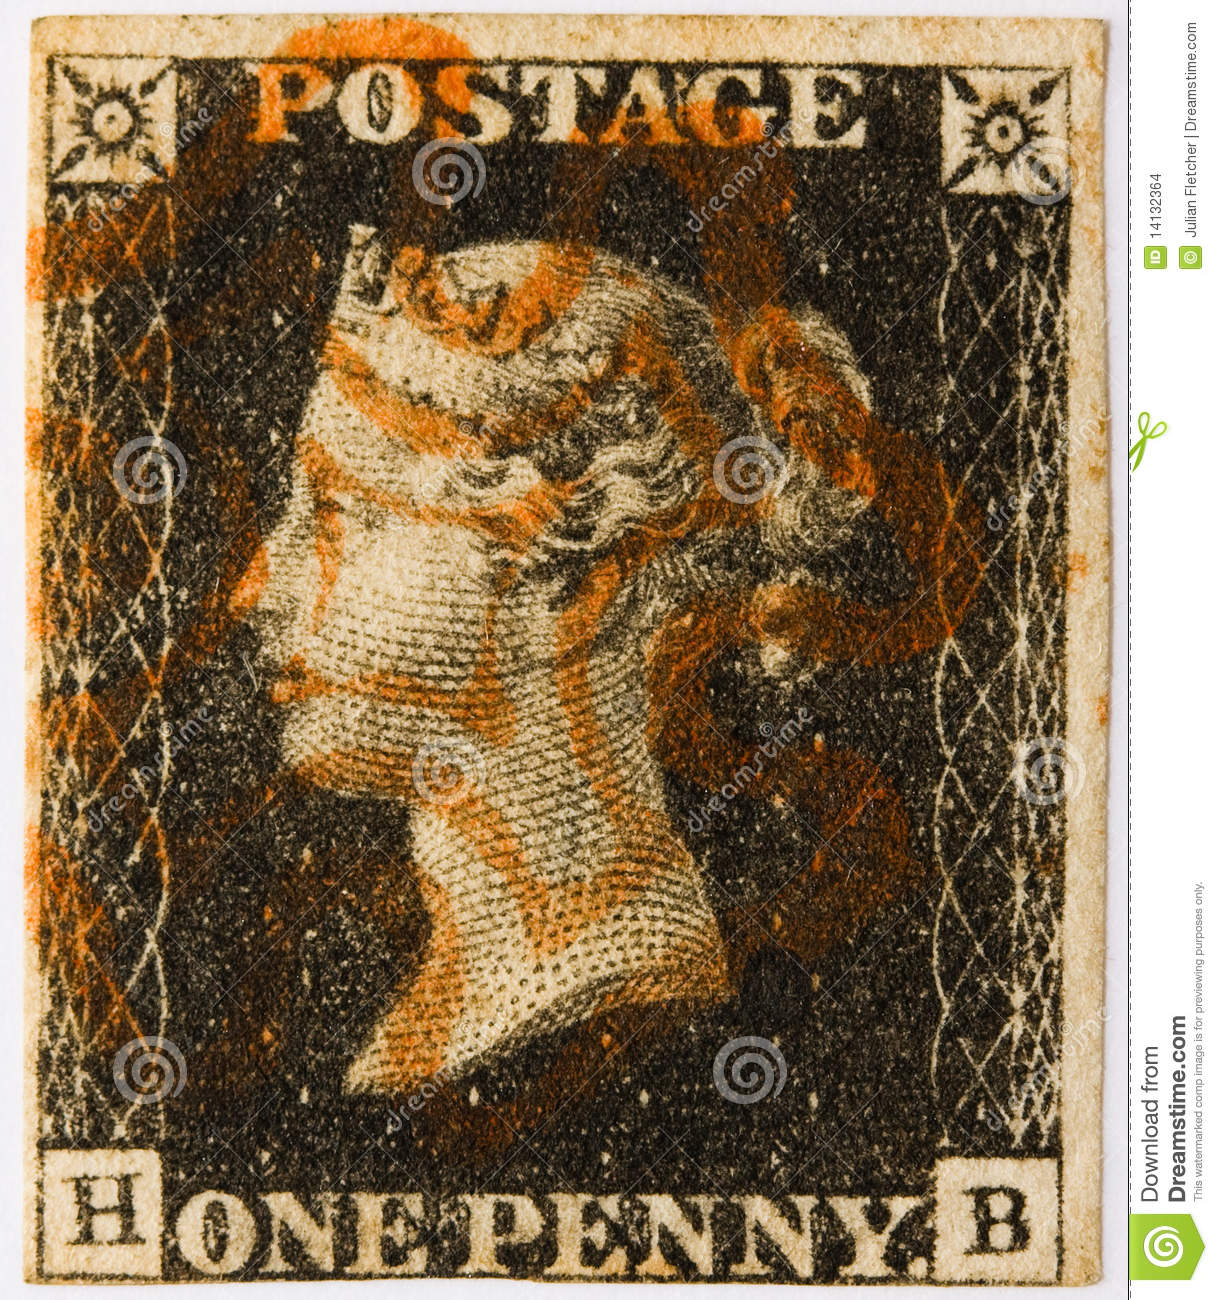 Penny Black with red postmark